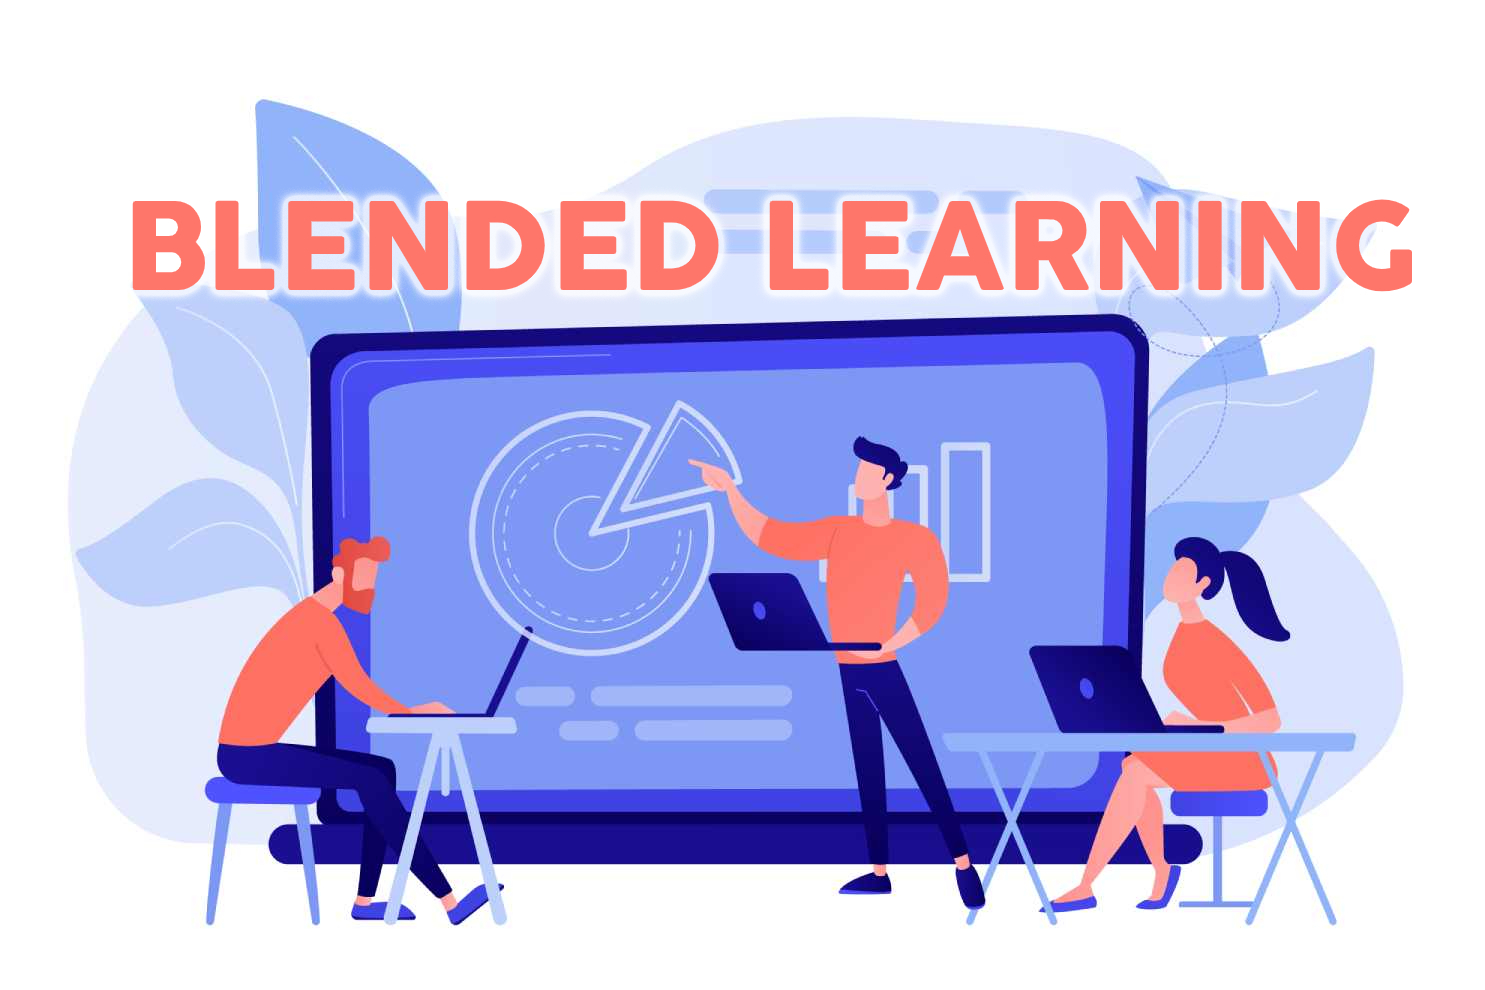 Blended Learning - Die Mischung macht's